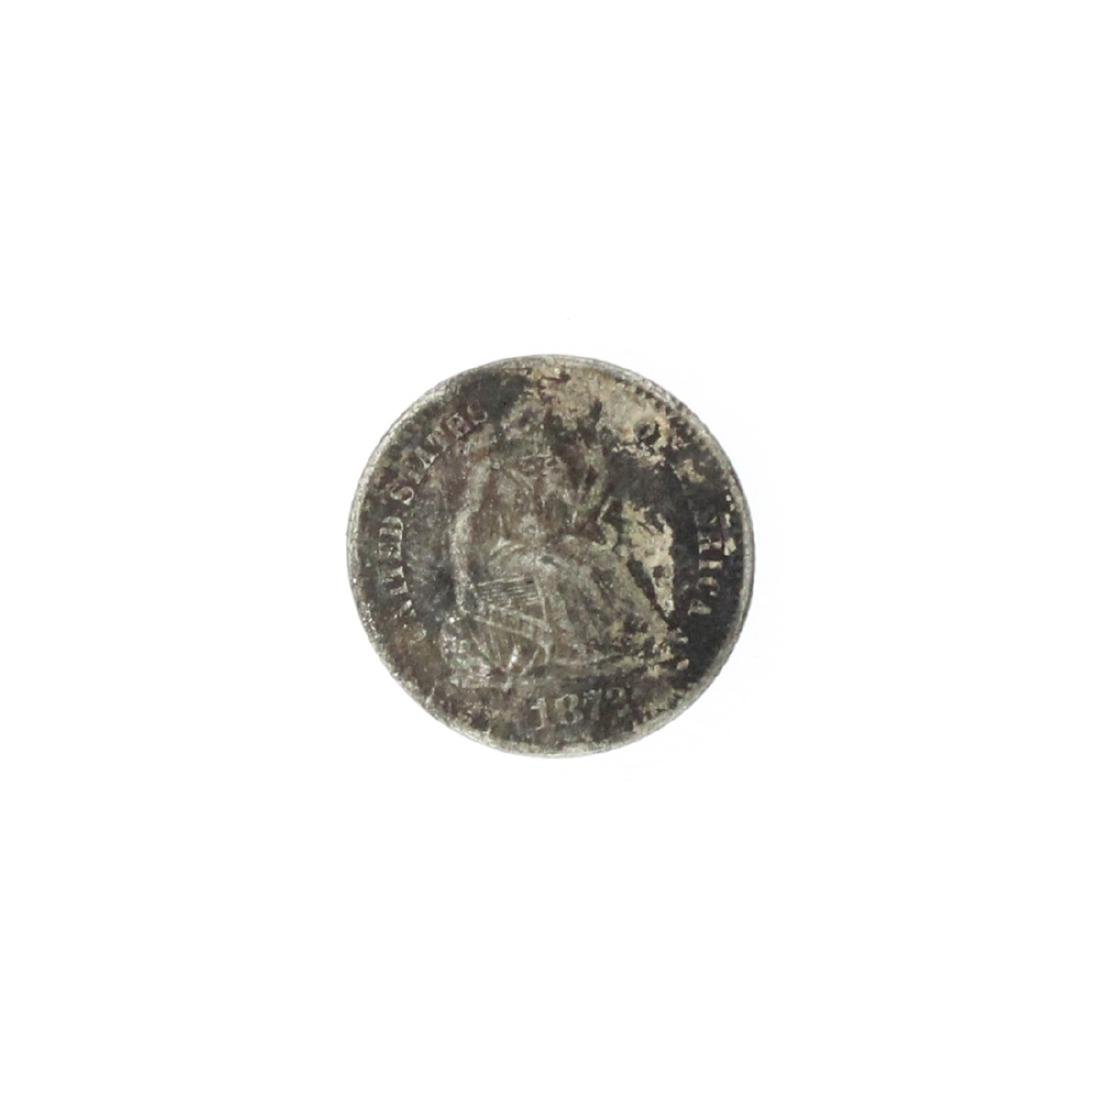 1872 Liberty Seated Half Dime Coin